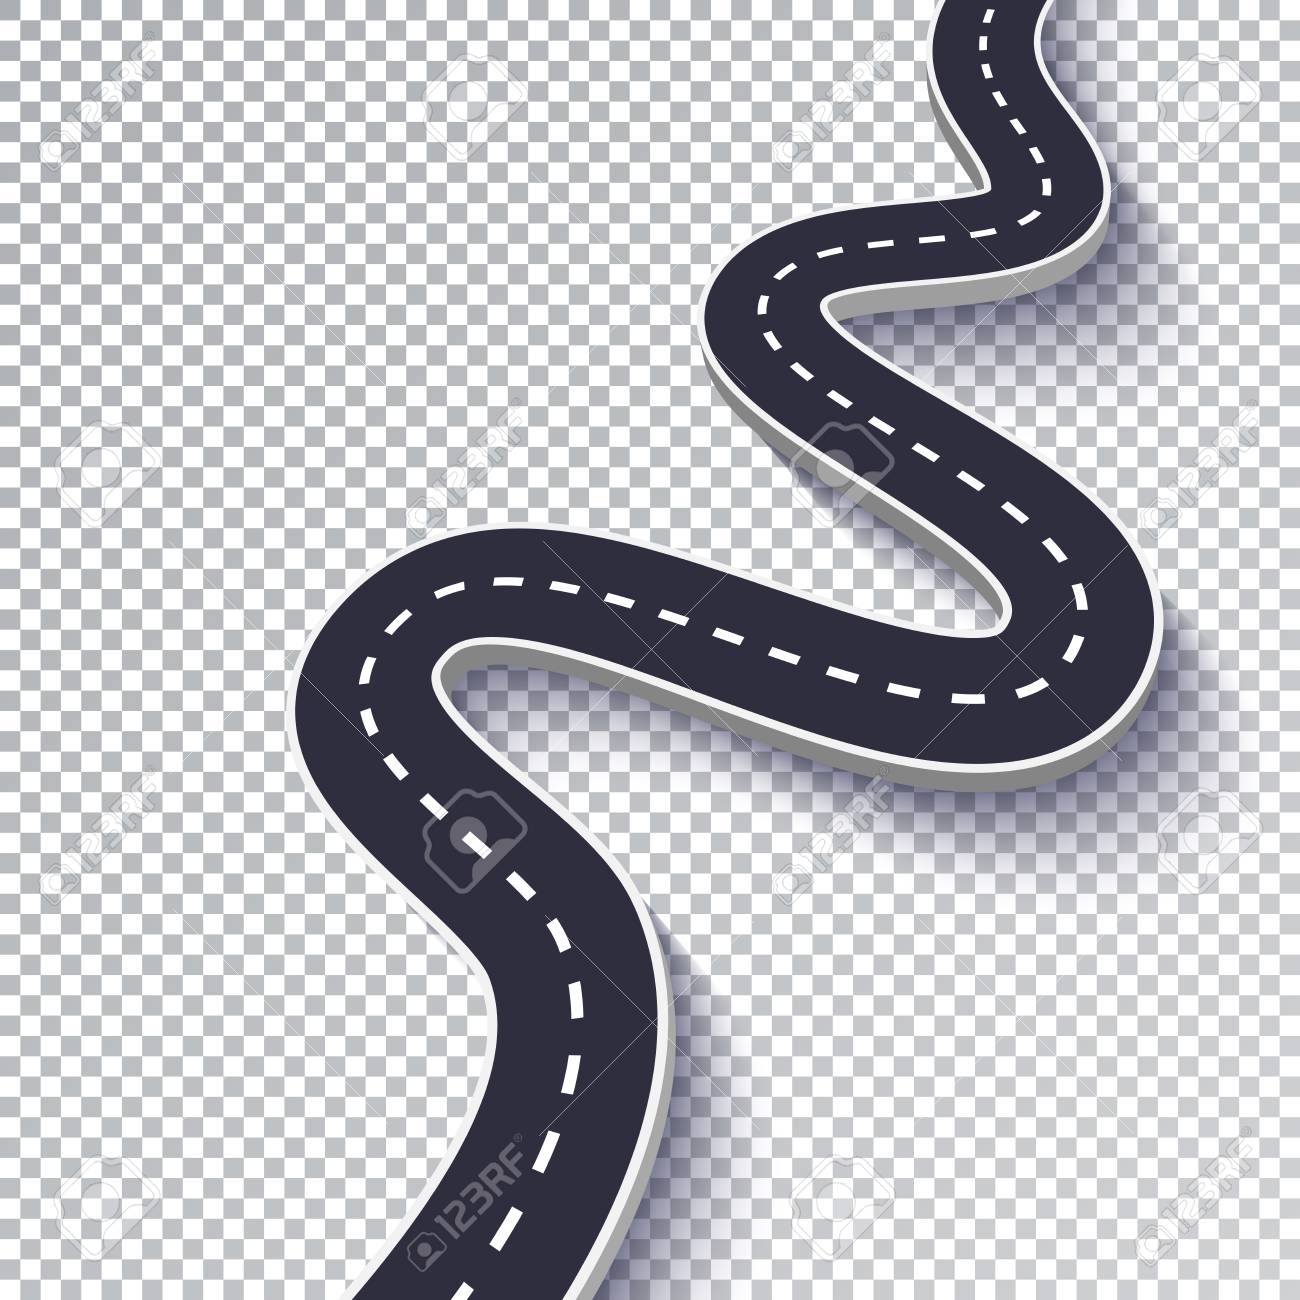 Windy Road Clip Art